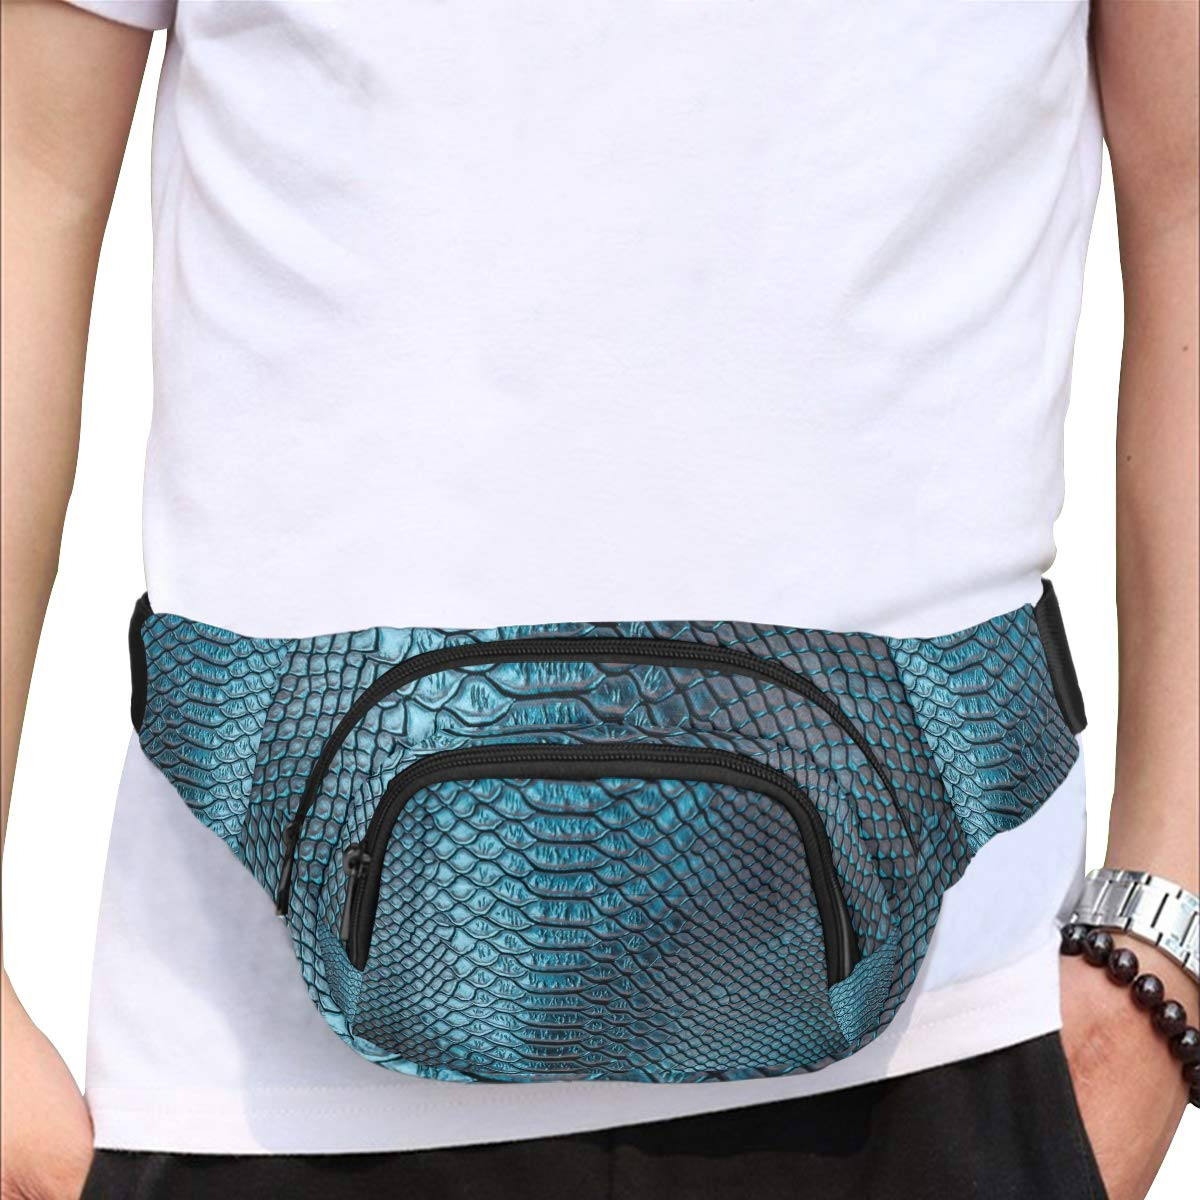 Fashion Printed Crocodile Skin Fenny Packs Waist Bags Adjustable Belt Waterproof Nylon Travel Running Sport Vacation Party For Men Women Boys Girls Kids